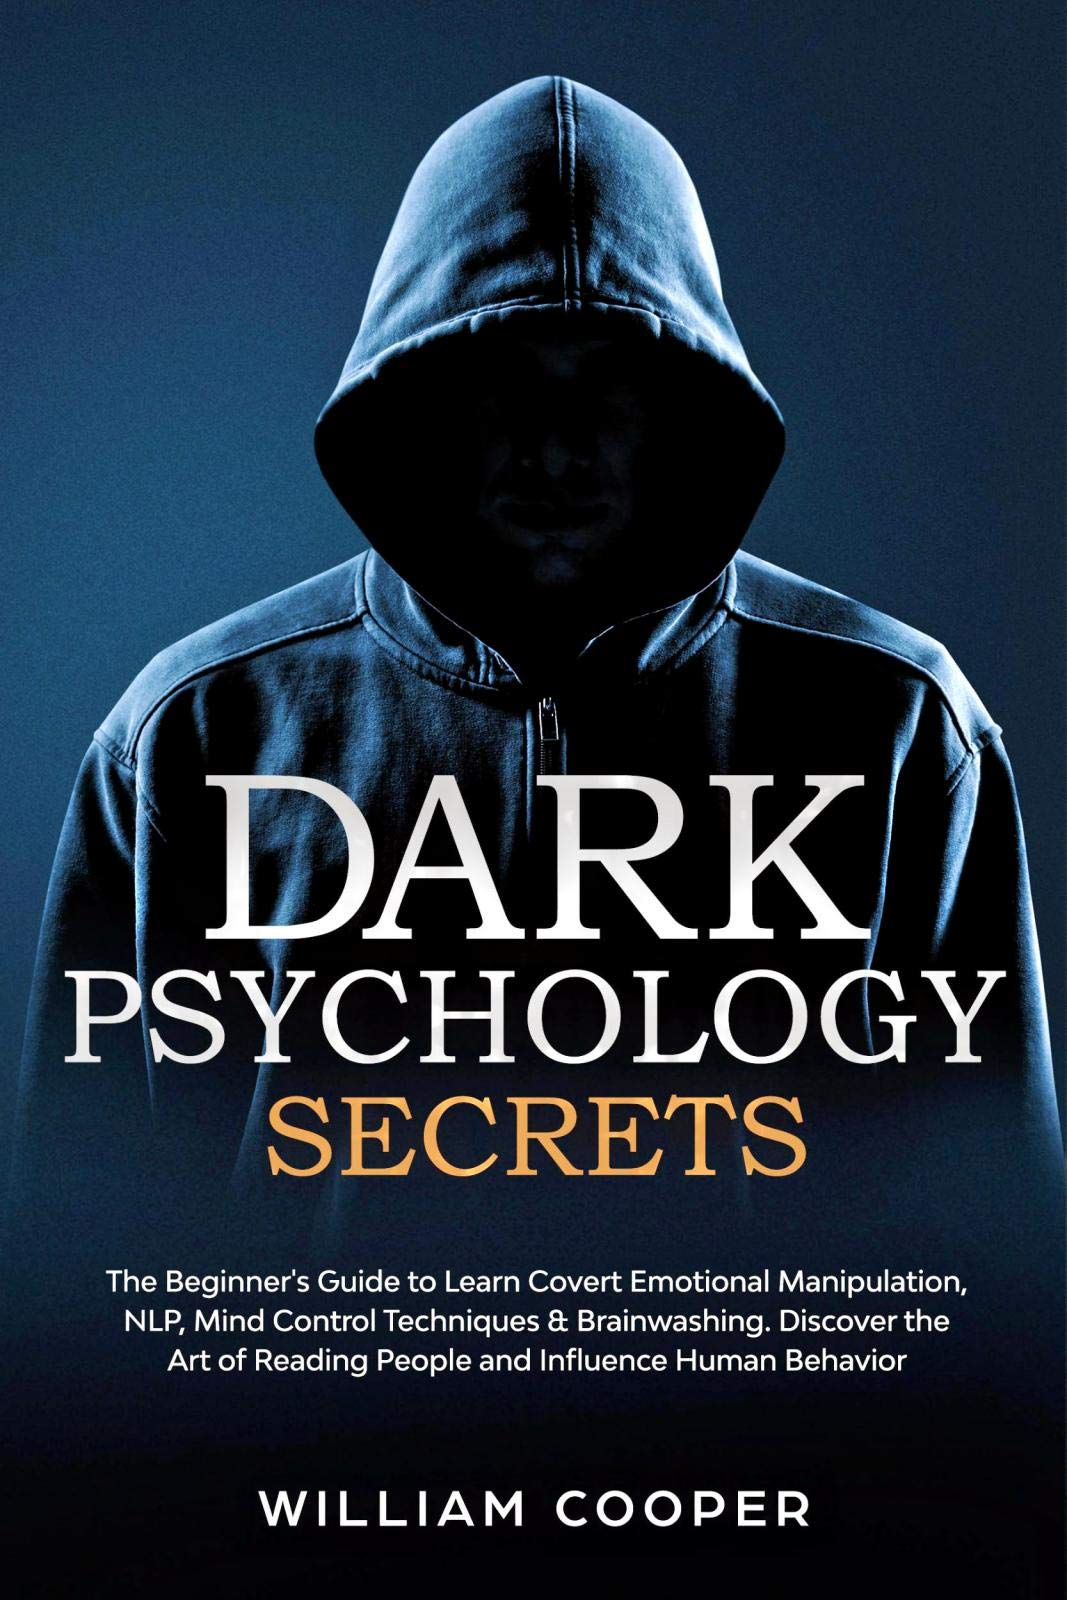 Dark Psychology Secrets: The Beginner's Guide to Learn Covert Emotional Manipulation, NLP, Mind Control Techniques & Brainwashing. Discover the Art of Reading People and Influence Human Behavior